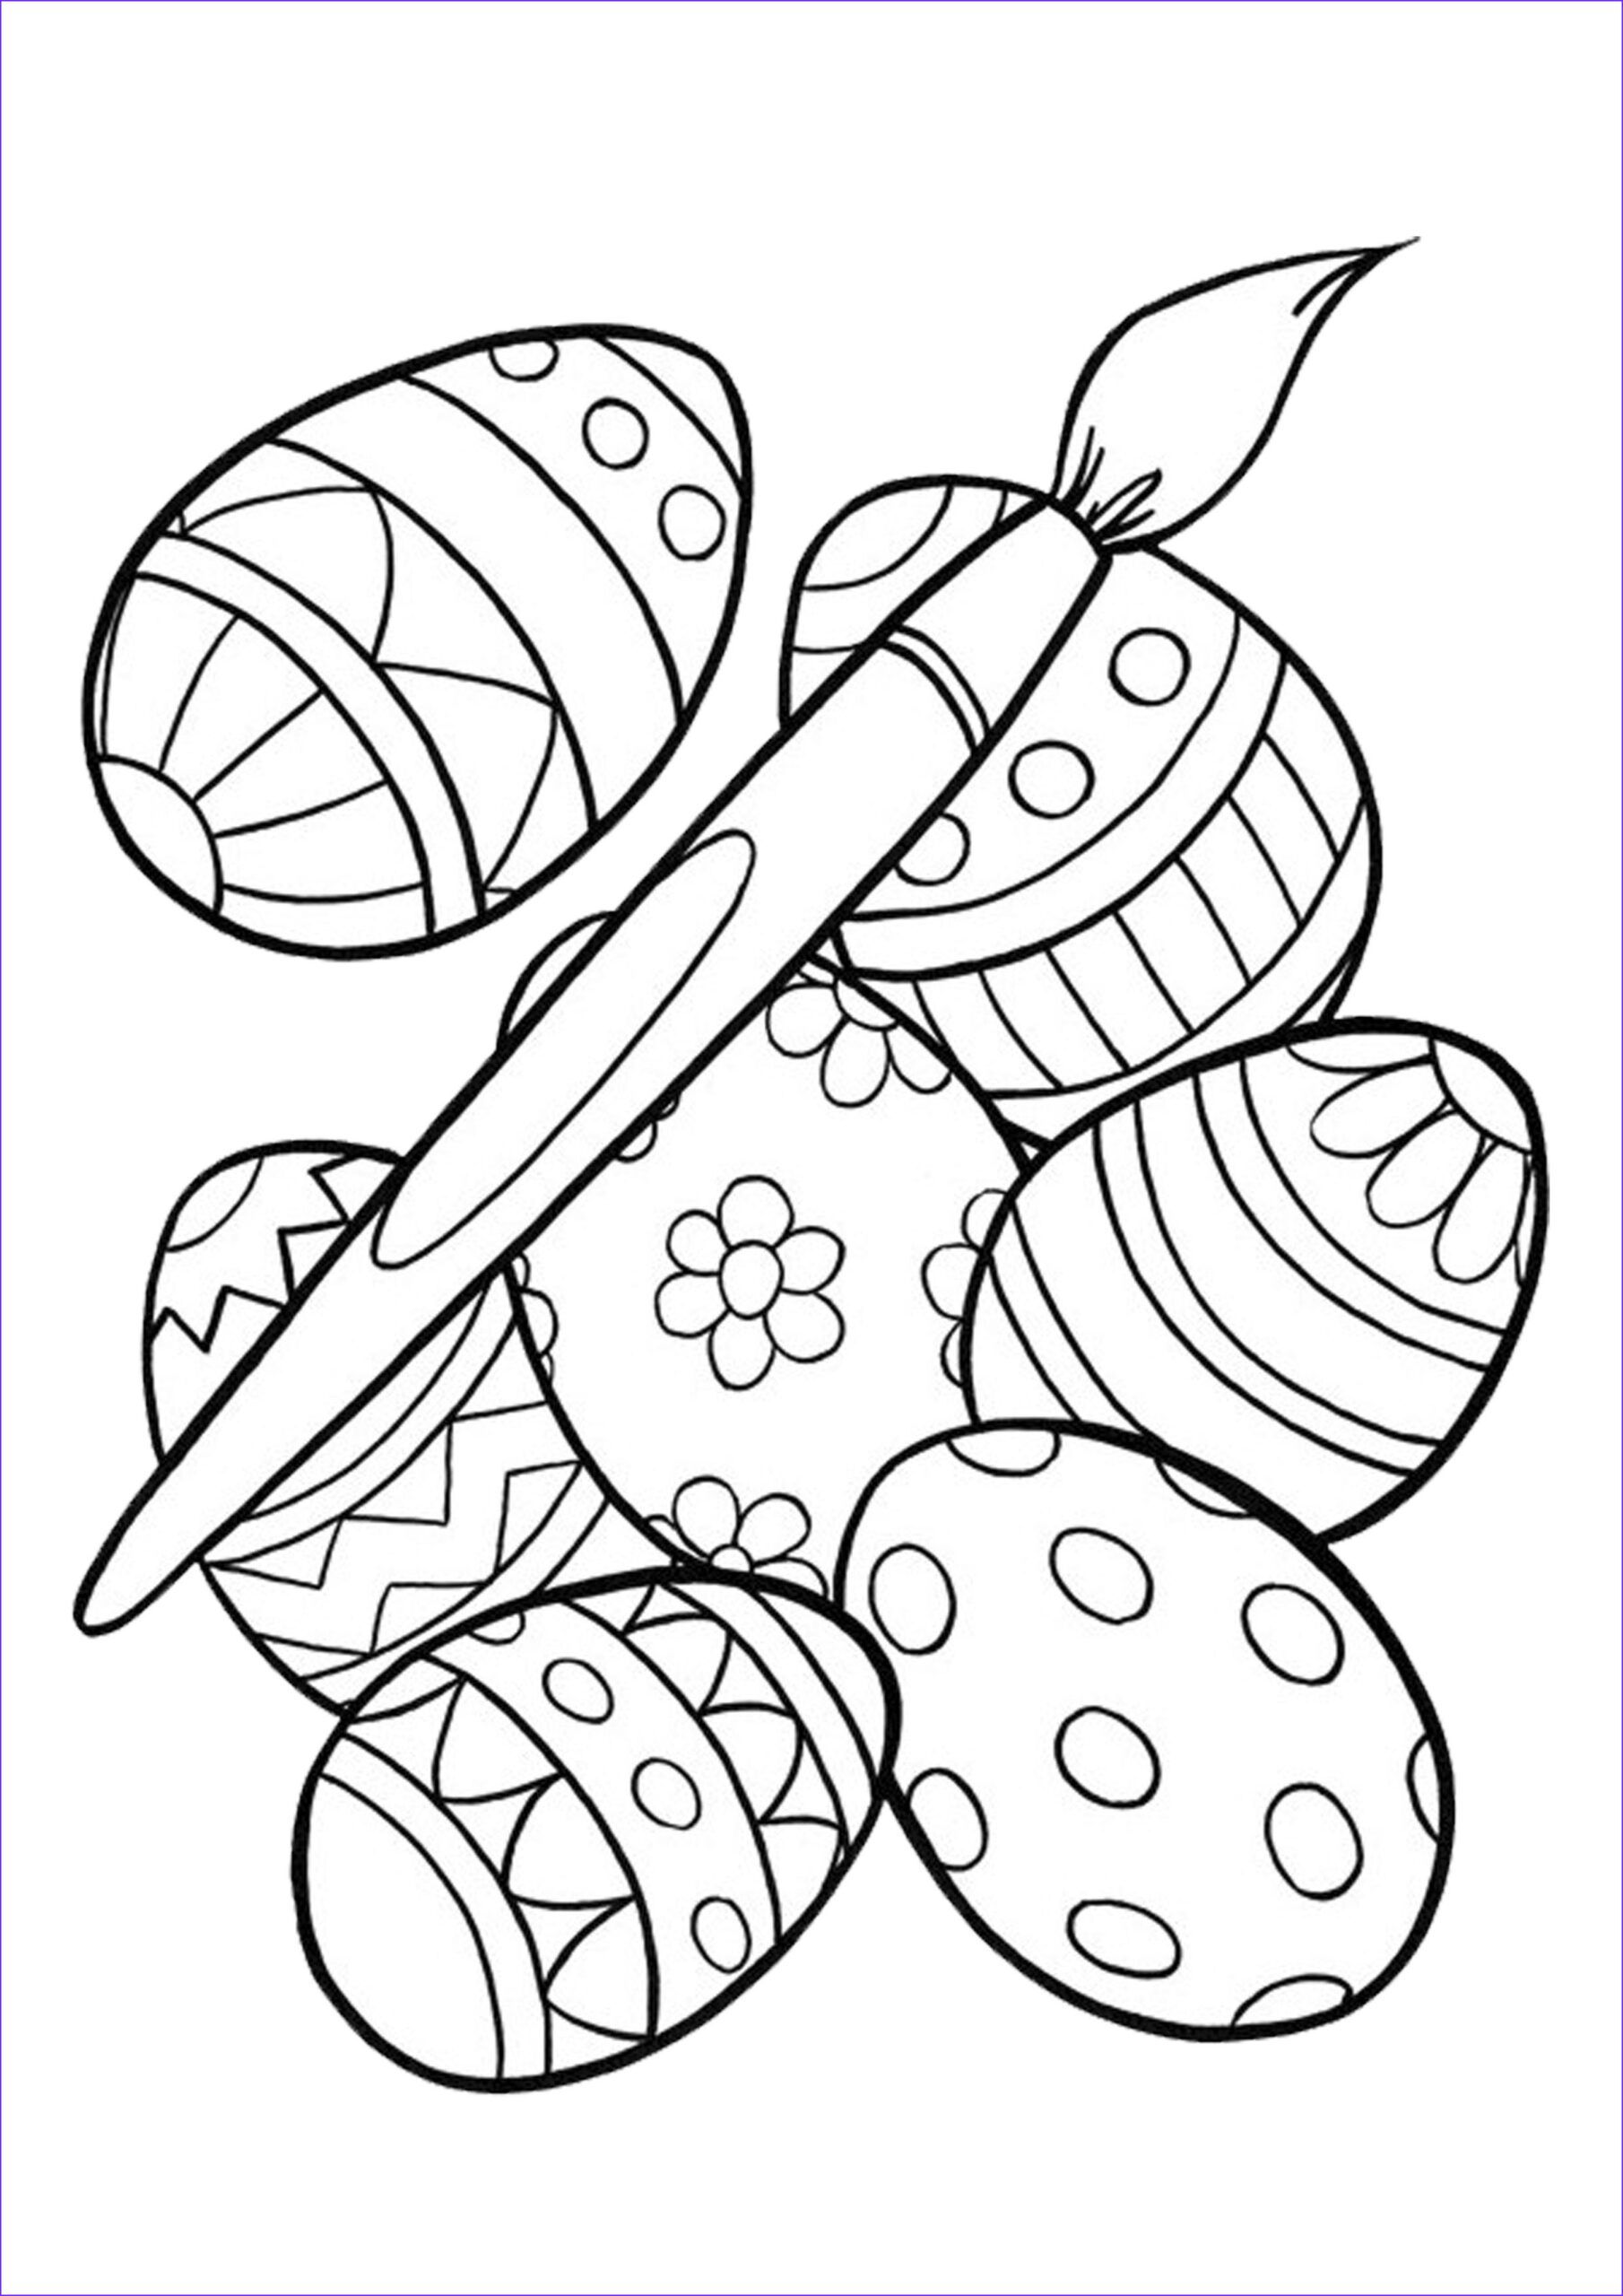 Coloring Pages for Easter Luxury Images Easter Color Pages Pinterest